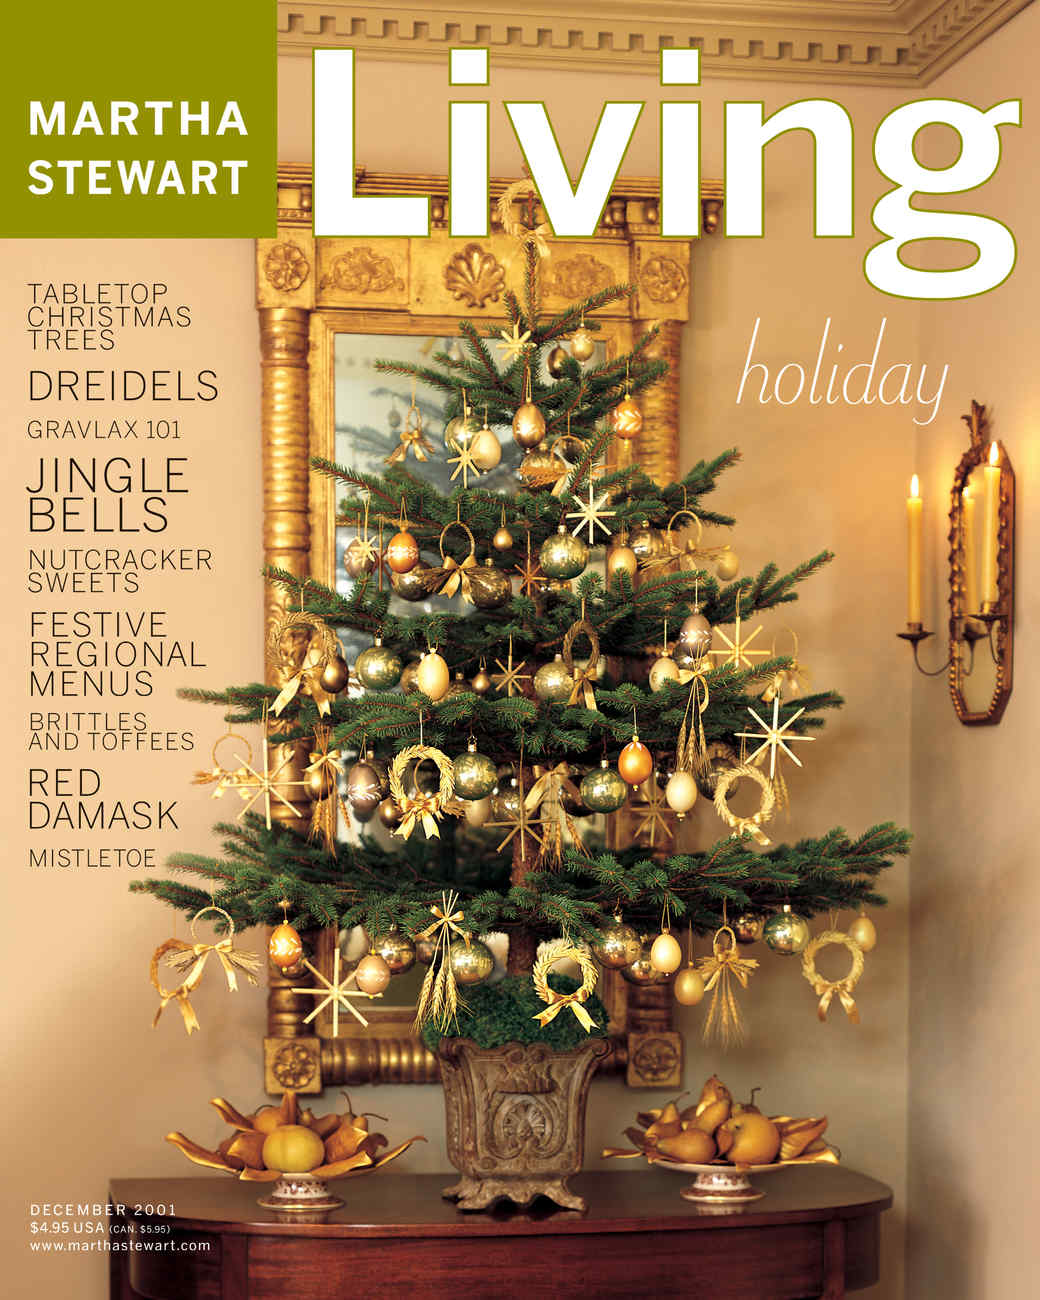 20 years of christmas with martha stewart living martha stewart - Martha Stewart Christmas